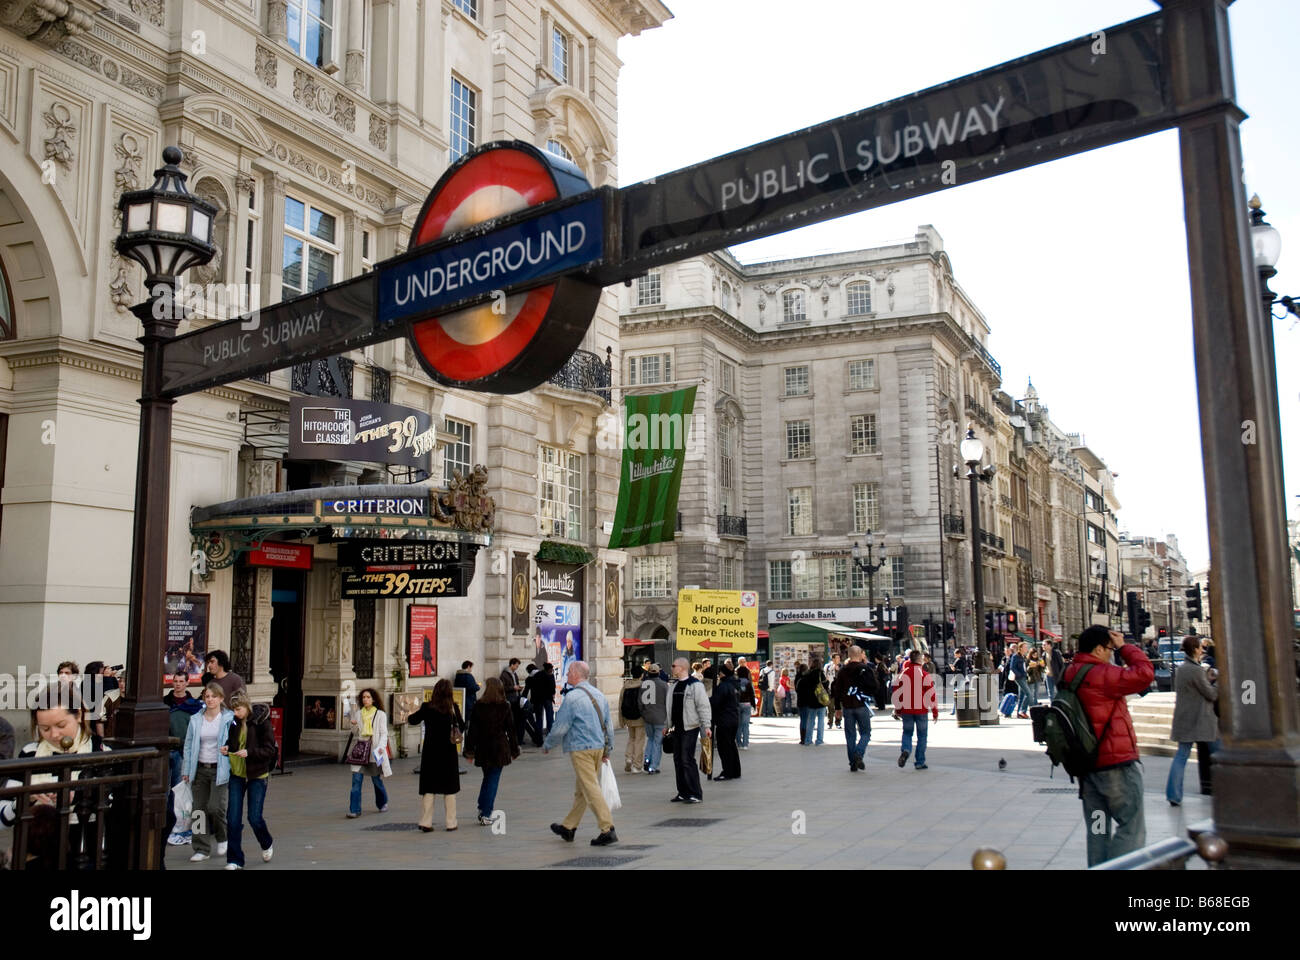 Underground subway entrance at Piccadilly Circus, London Stock Photo